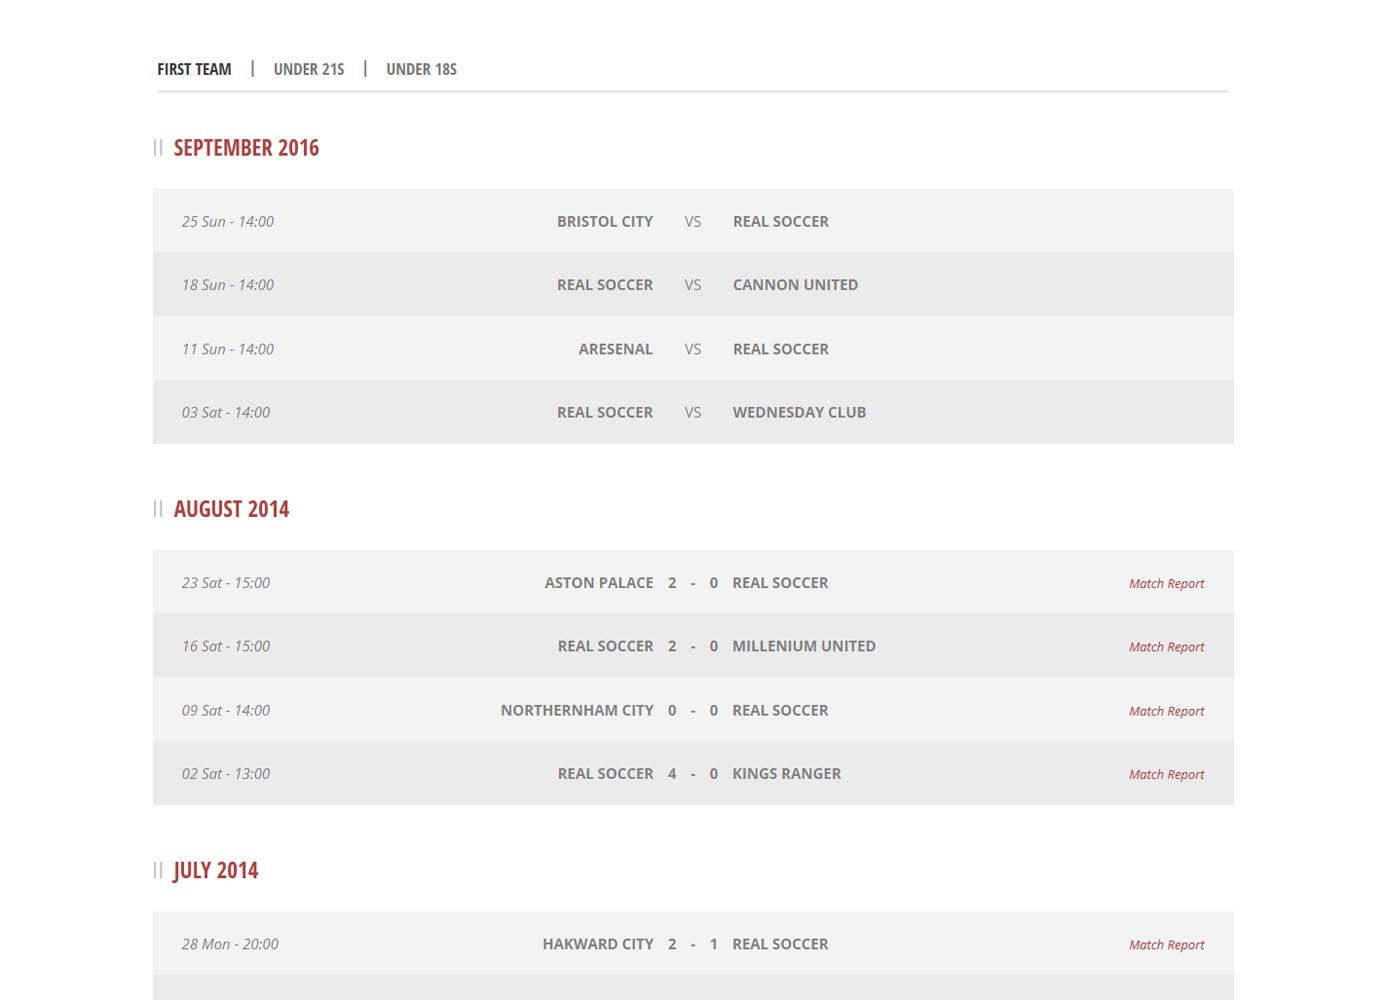 KHI_UNITED-Fixtures-Results